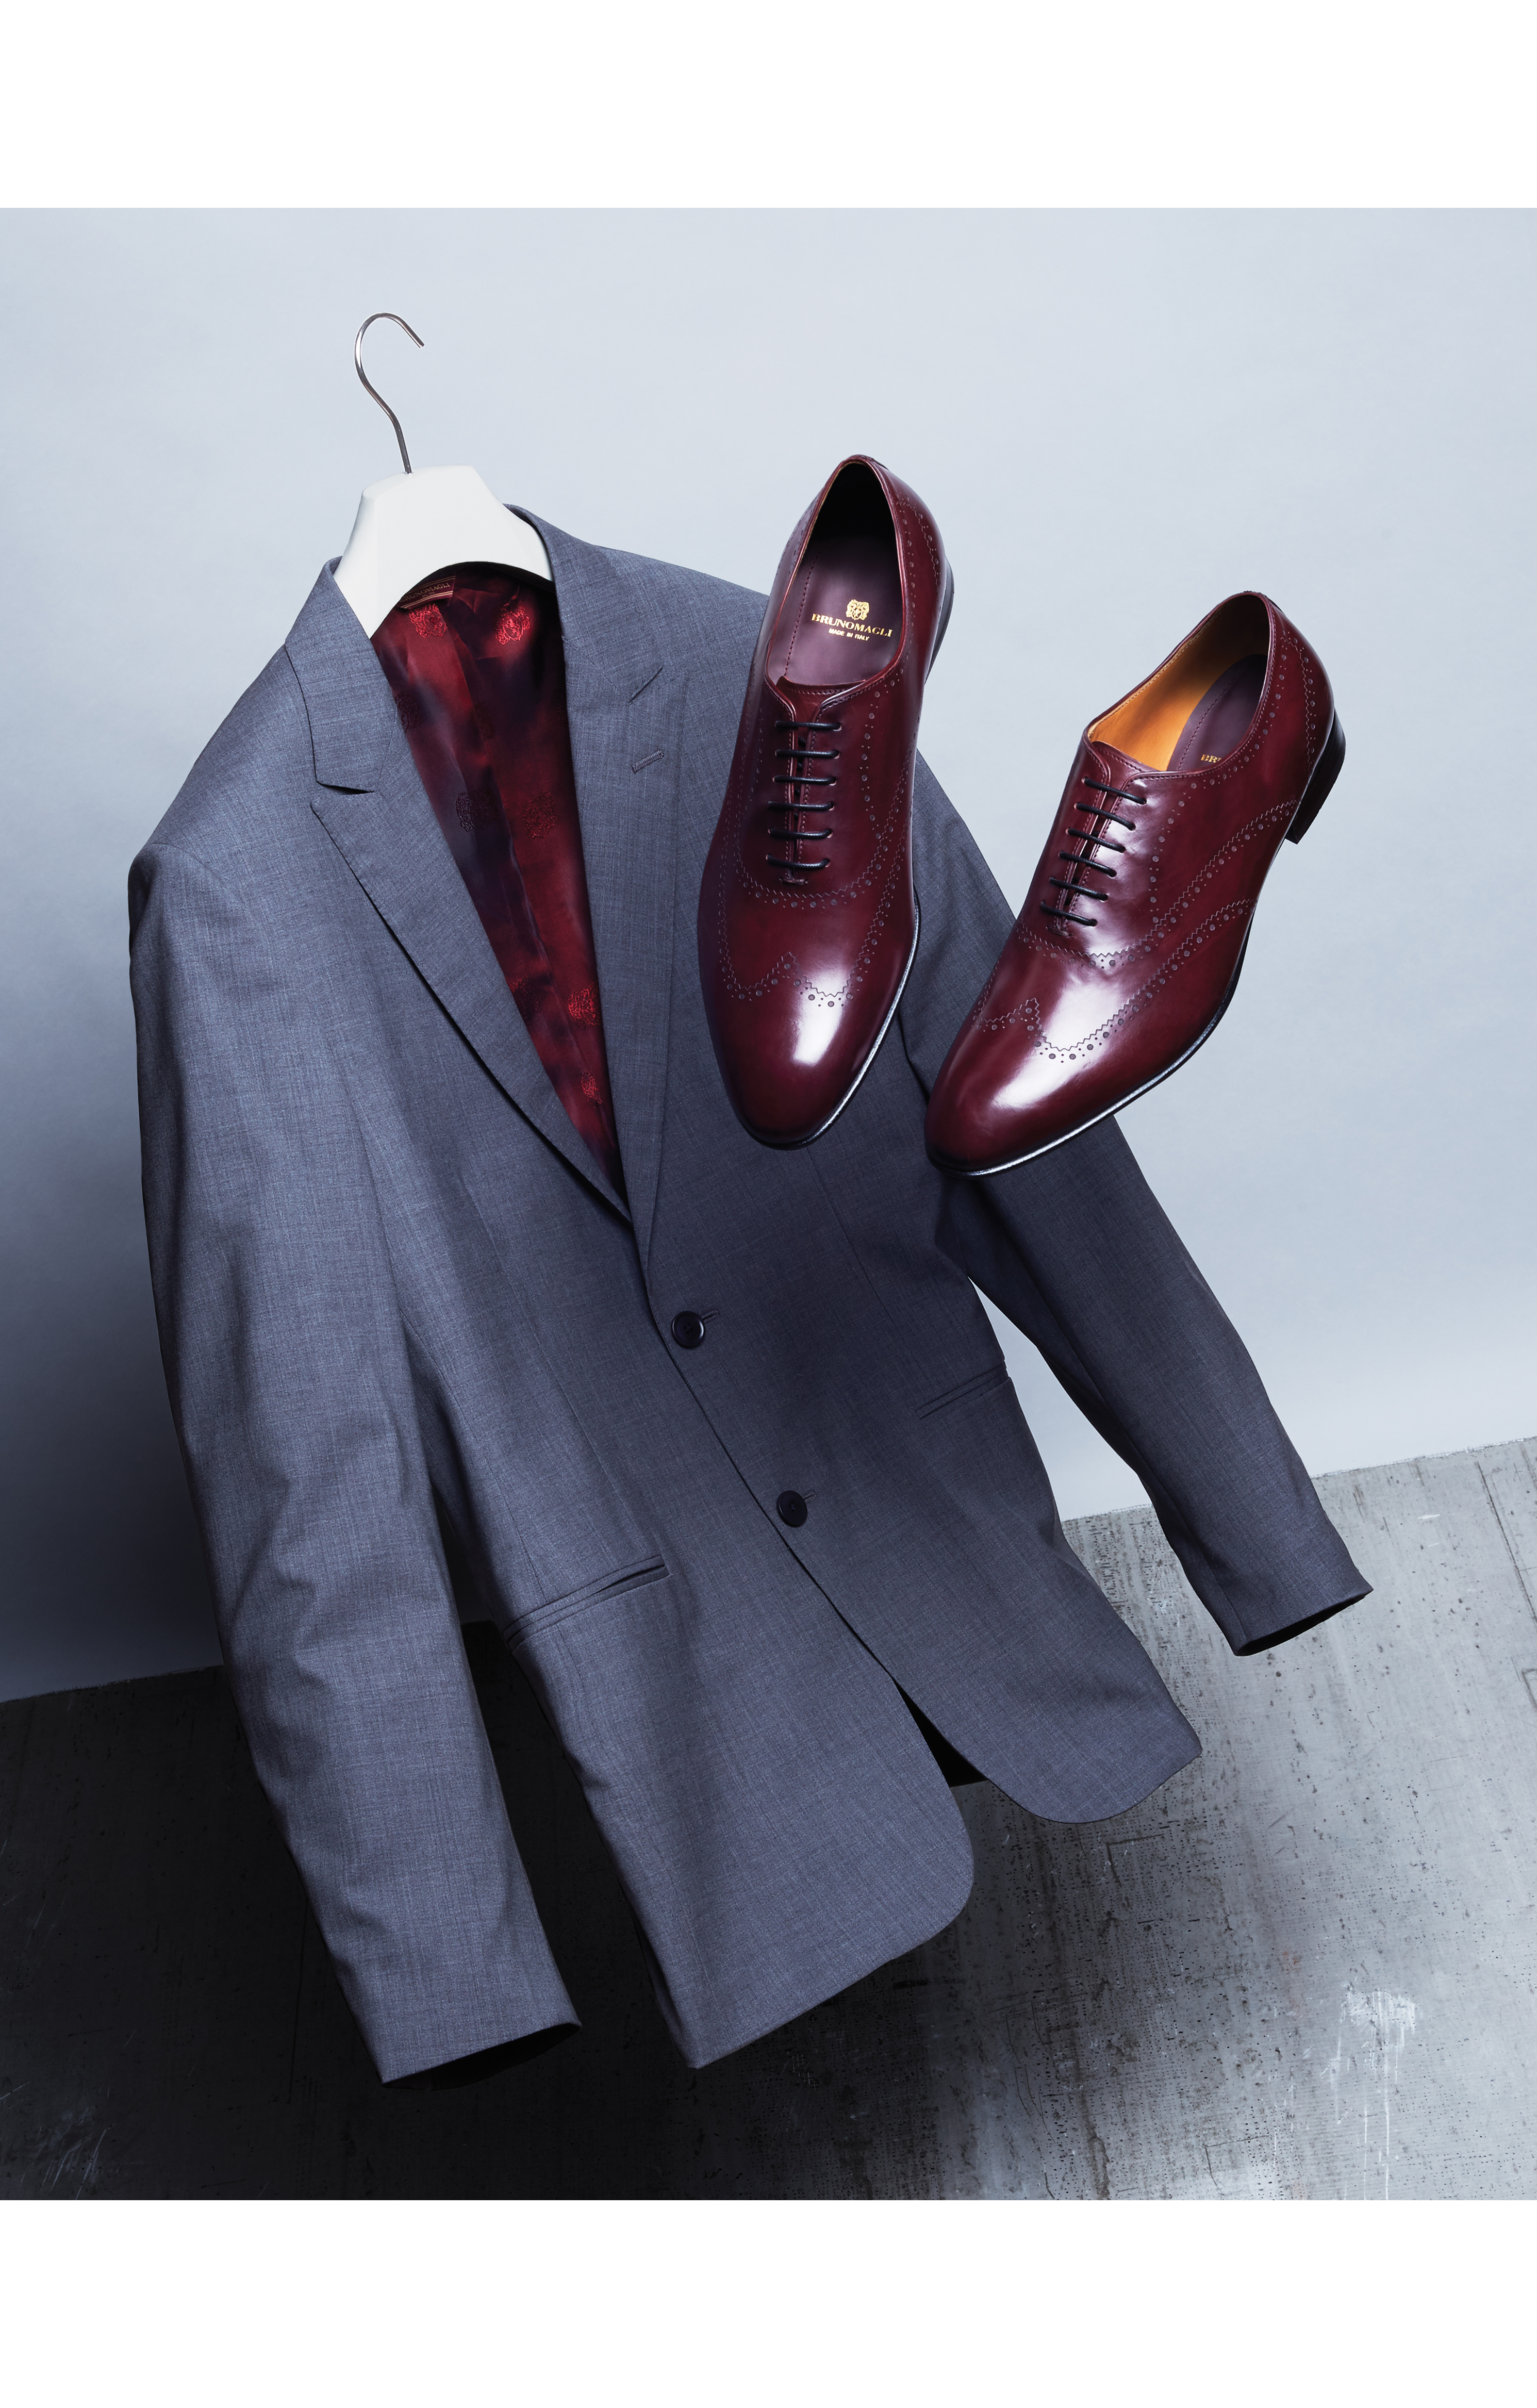 Bruno Magli's wool suit and shoes. Design Evolution